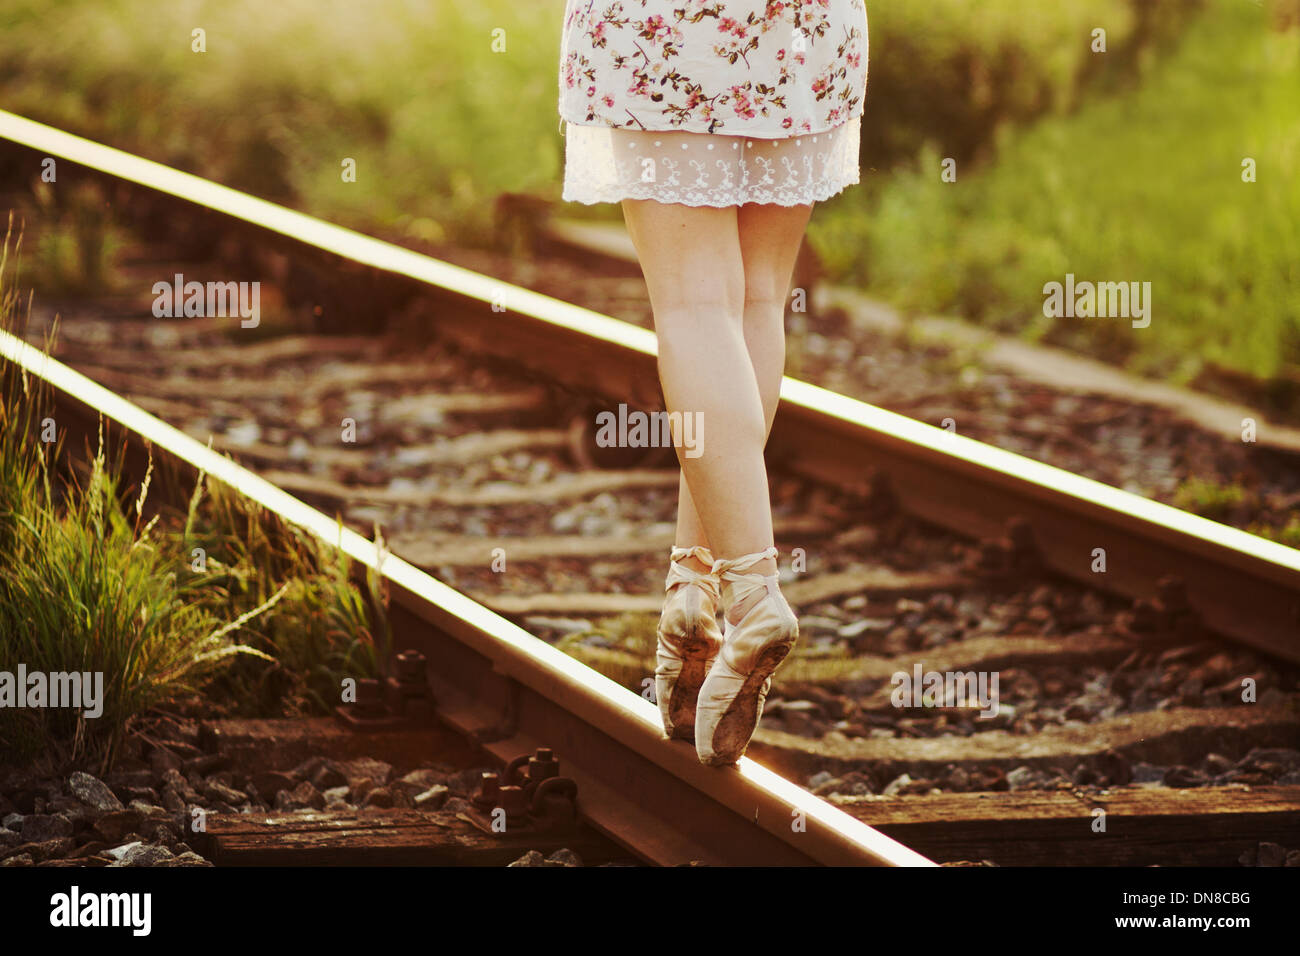 Young woman in dress balancing on a railway track - Stock Image